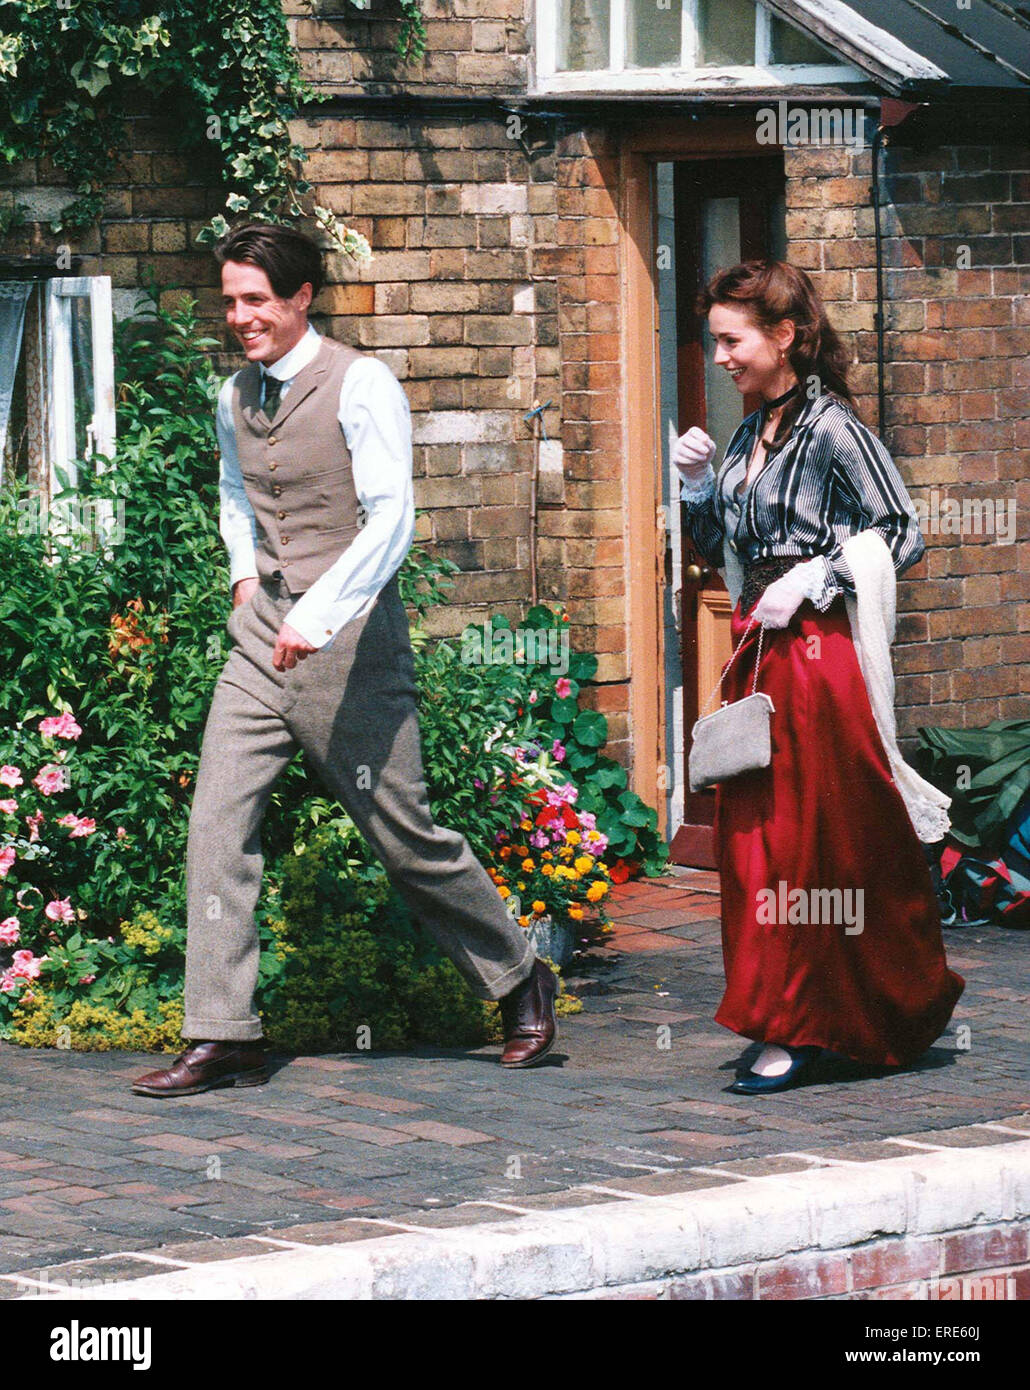 Hugh Grant gets chased by Tara FitzGerald on Hampton Loade station Shropshire on The Severn Valley Steam Railway, - Stock Image